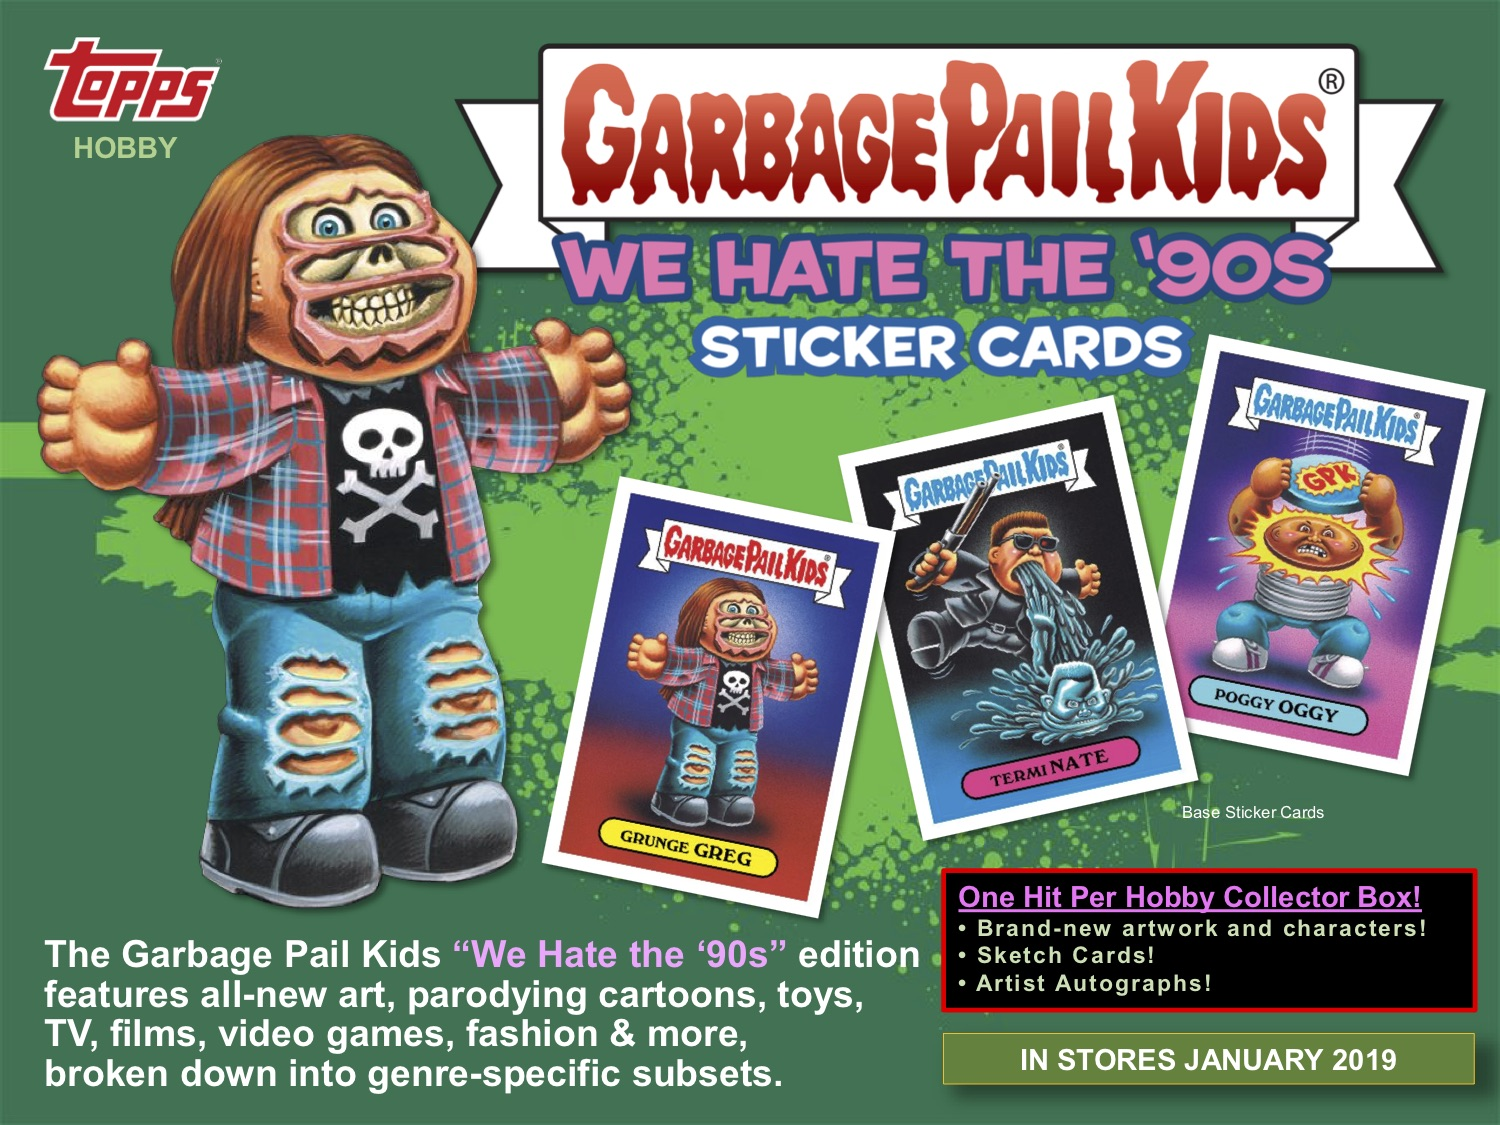 Topps Announces 2019 Series 1 Garbage Pail Kids We Hate The 90s